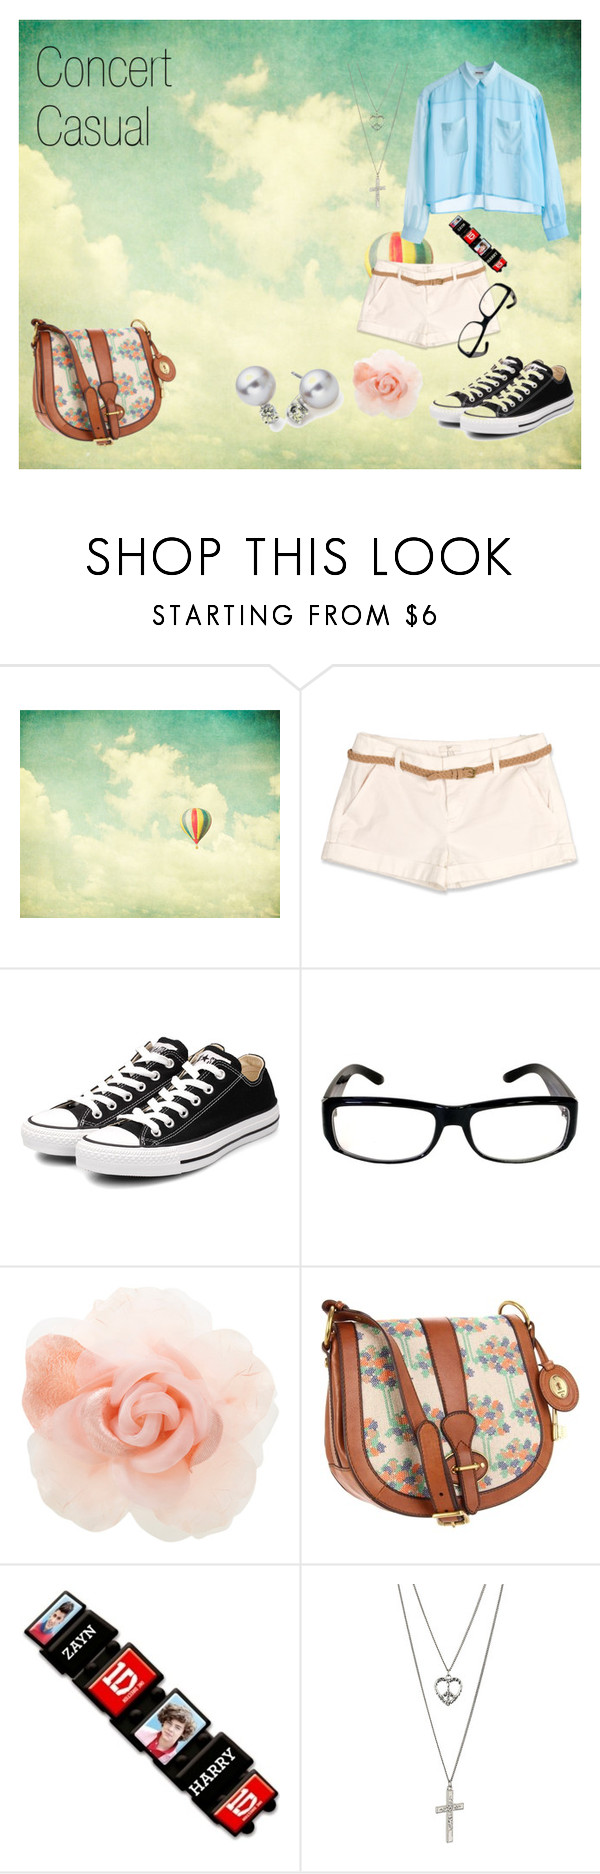 """Concert Casual"" by morganstrawberryfields ❤ liked on Polyvore featuring Joie, Converse, Warehouse, FOSSIL, Dorothy Perkins and Blue Nile"